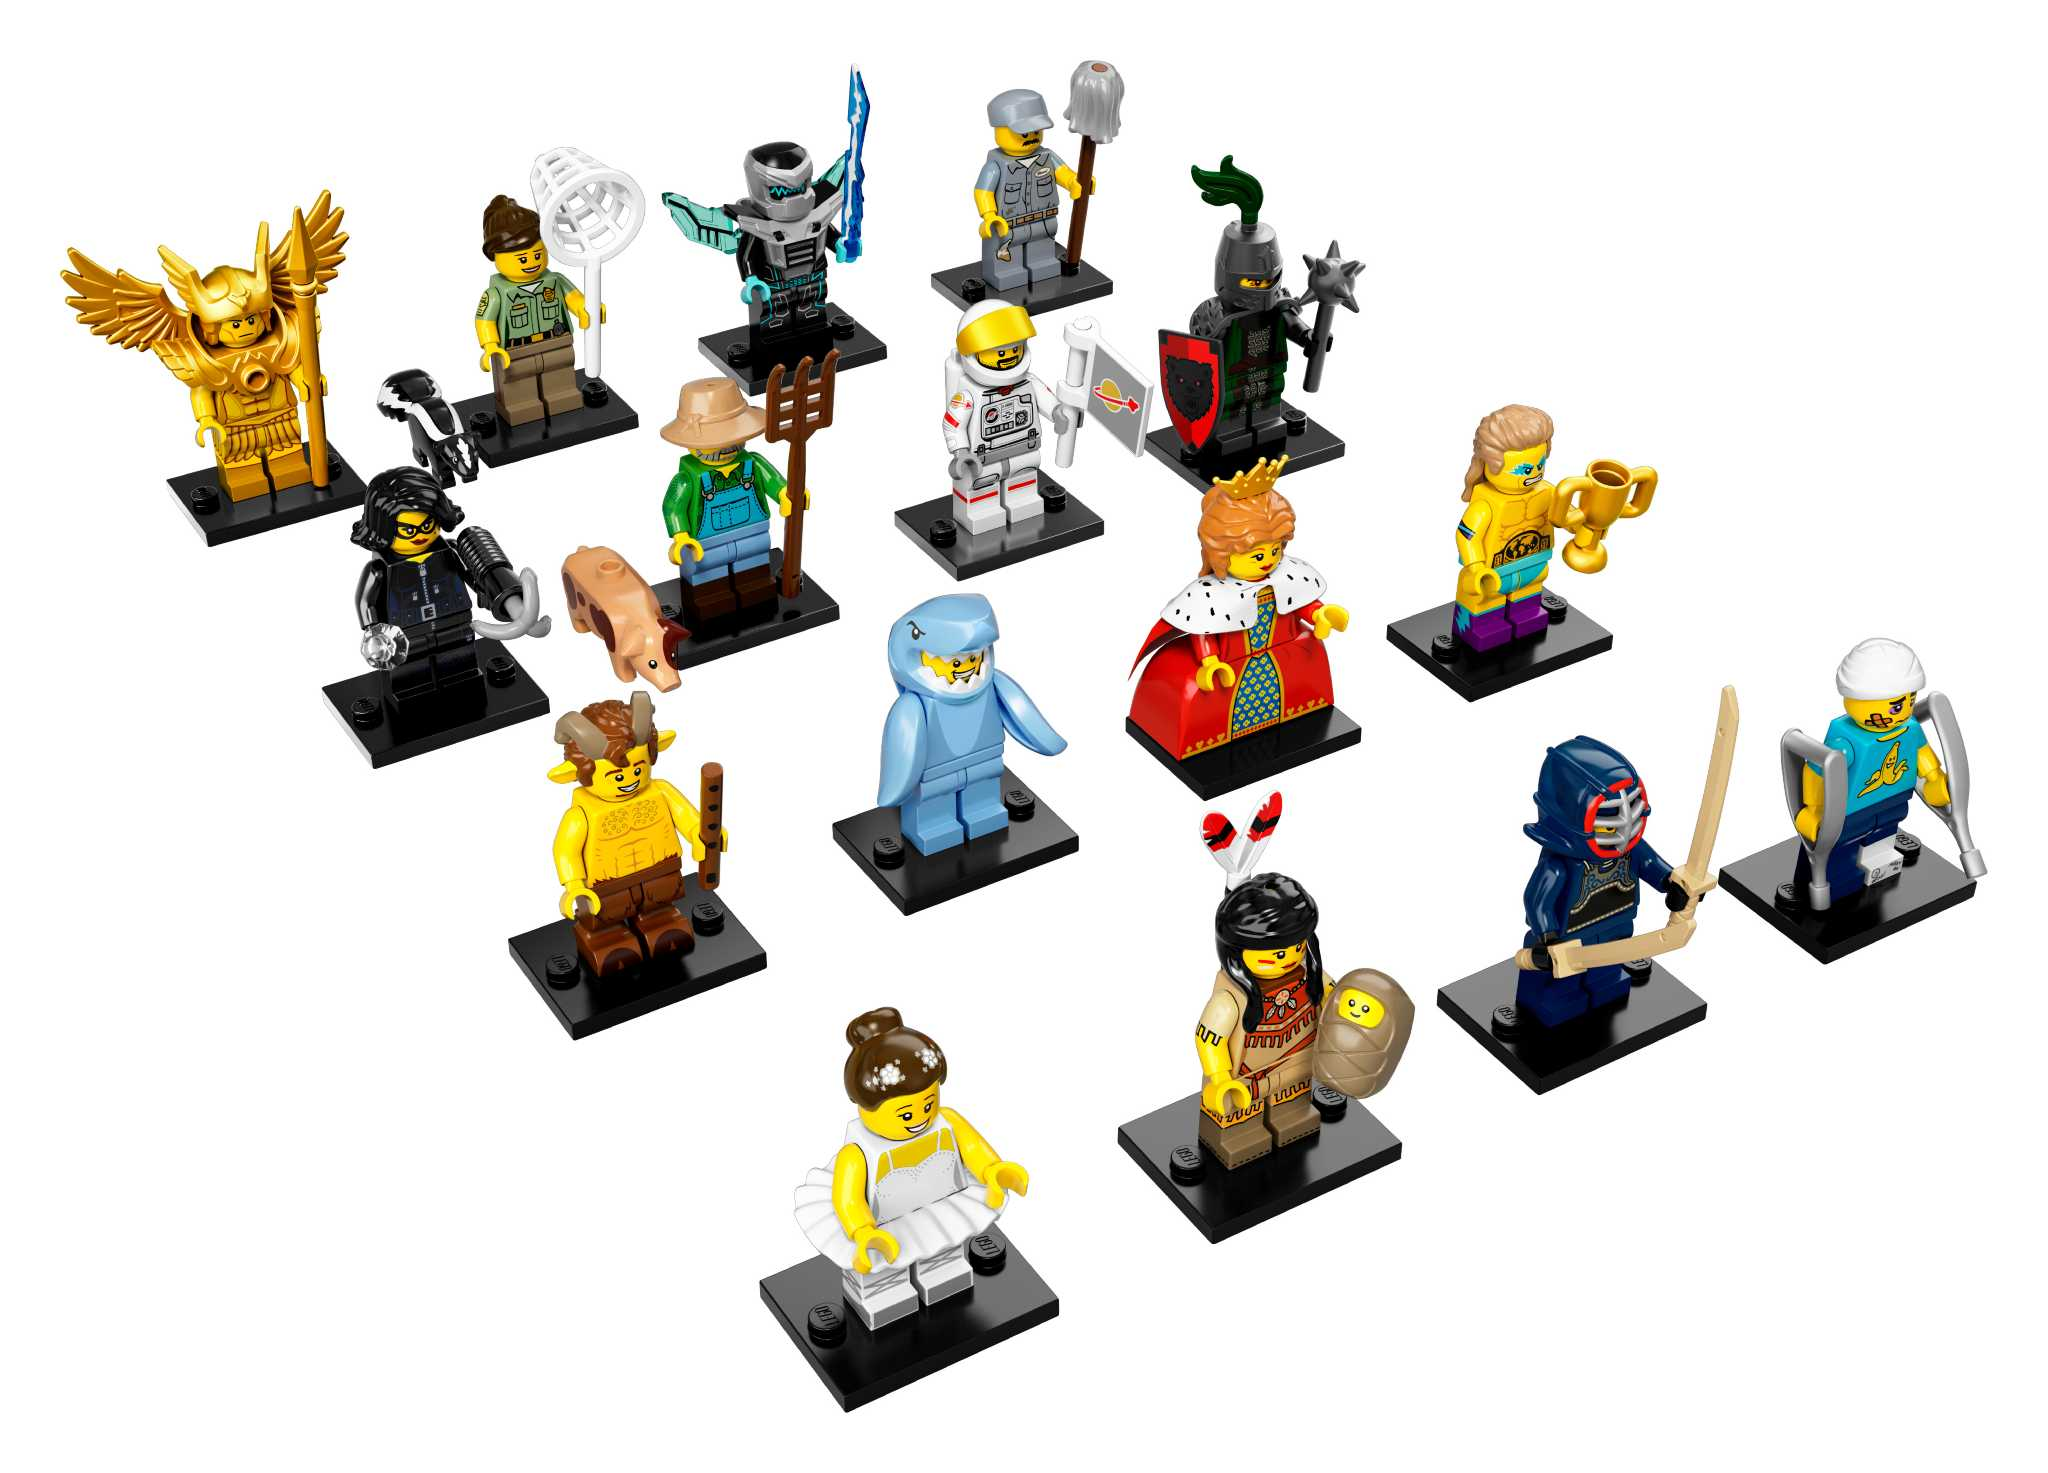 lego minifigures unveil left shark and other offerings sfgate. Black Bedroom Furniture Sets. Home Design Ideas